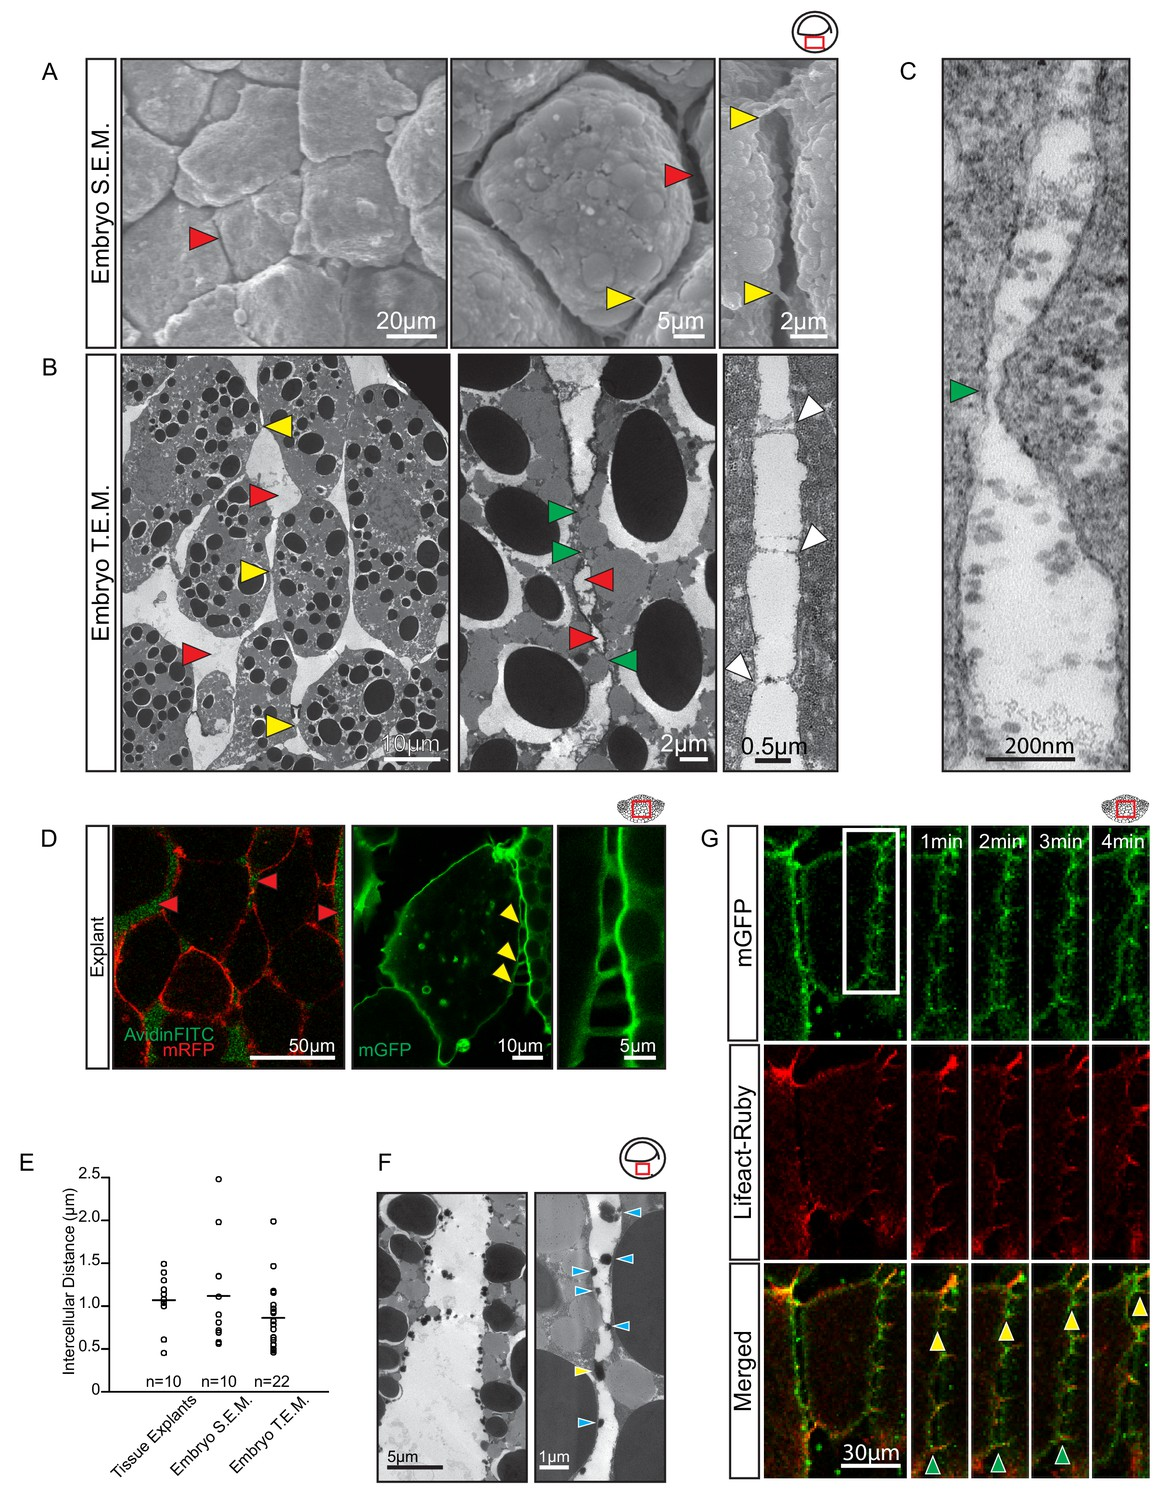 Ingression Type Cell Migration Drives Vegetal Endoderm Structure And Much More Interesting Information Cells Migrate Through Wide Interstitial Spaces